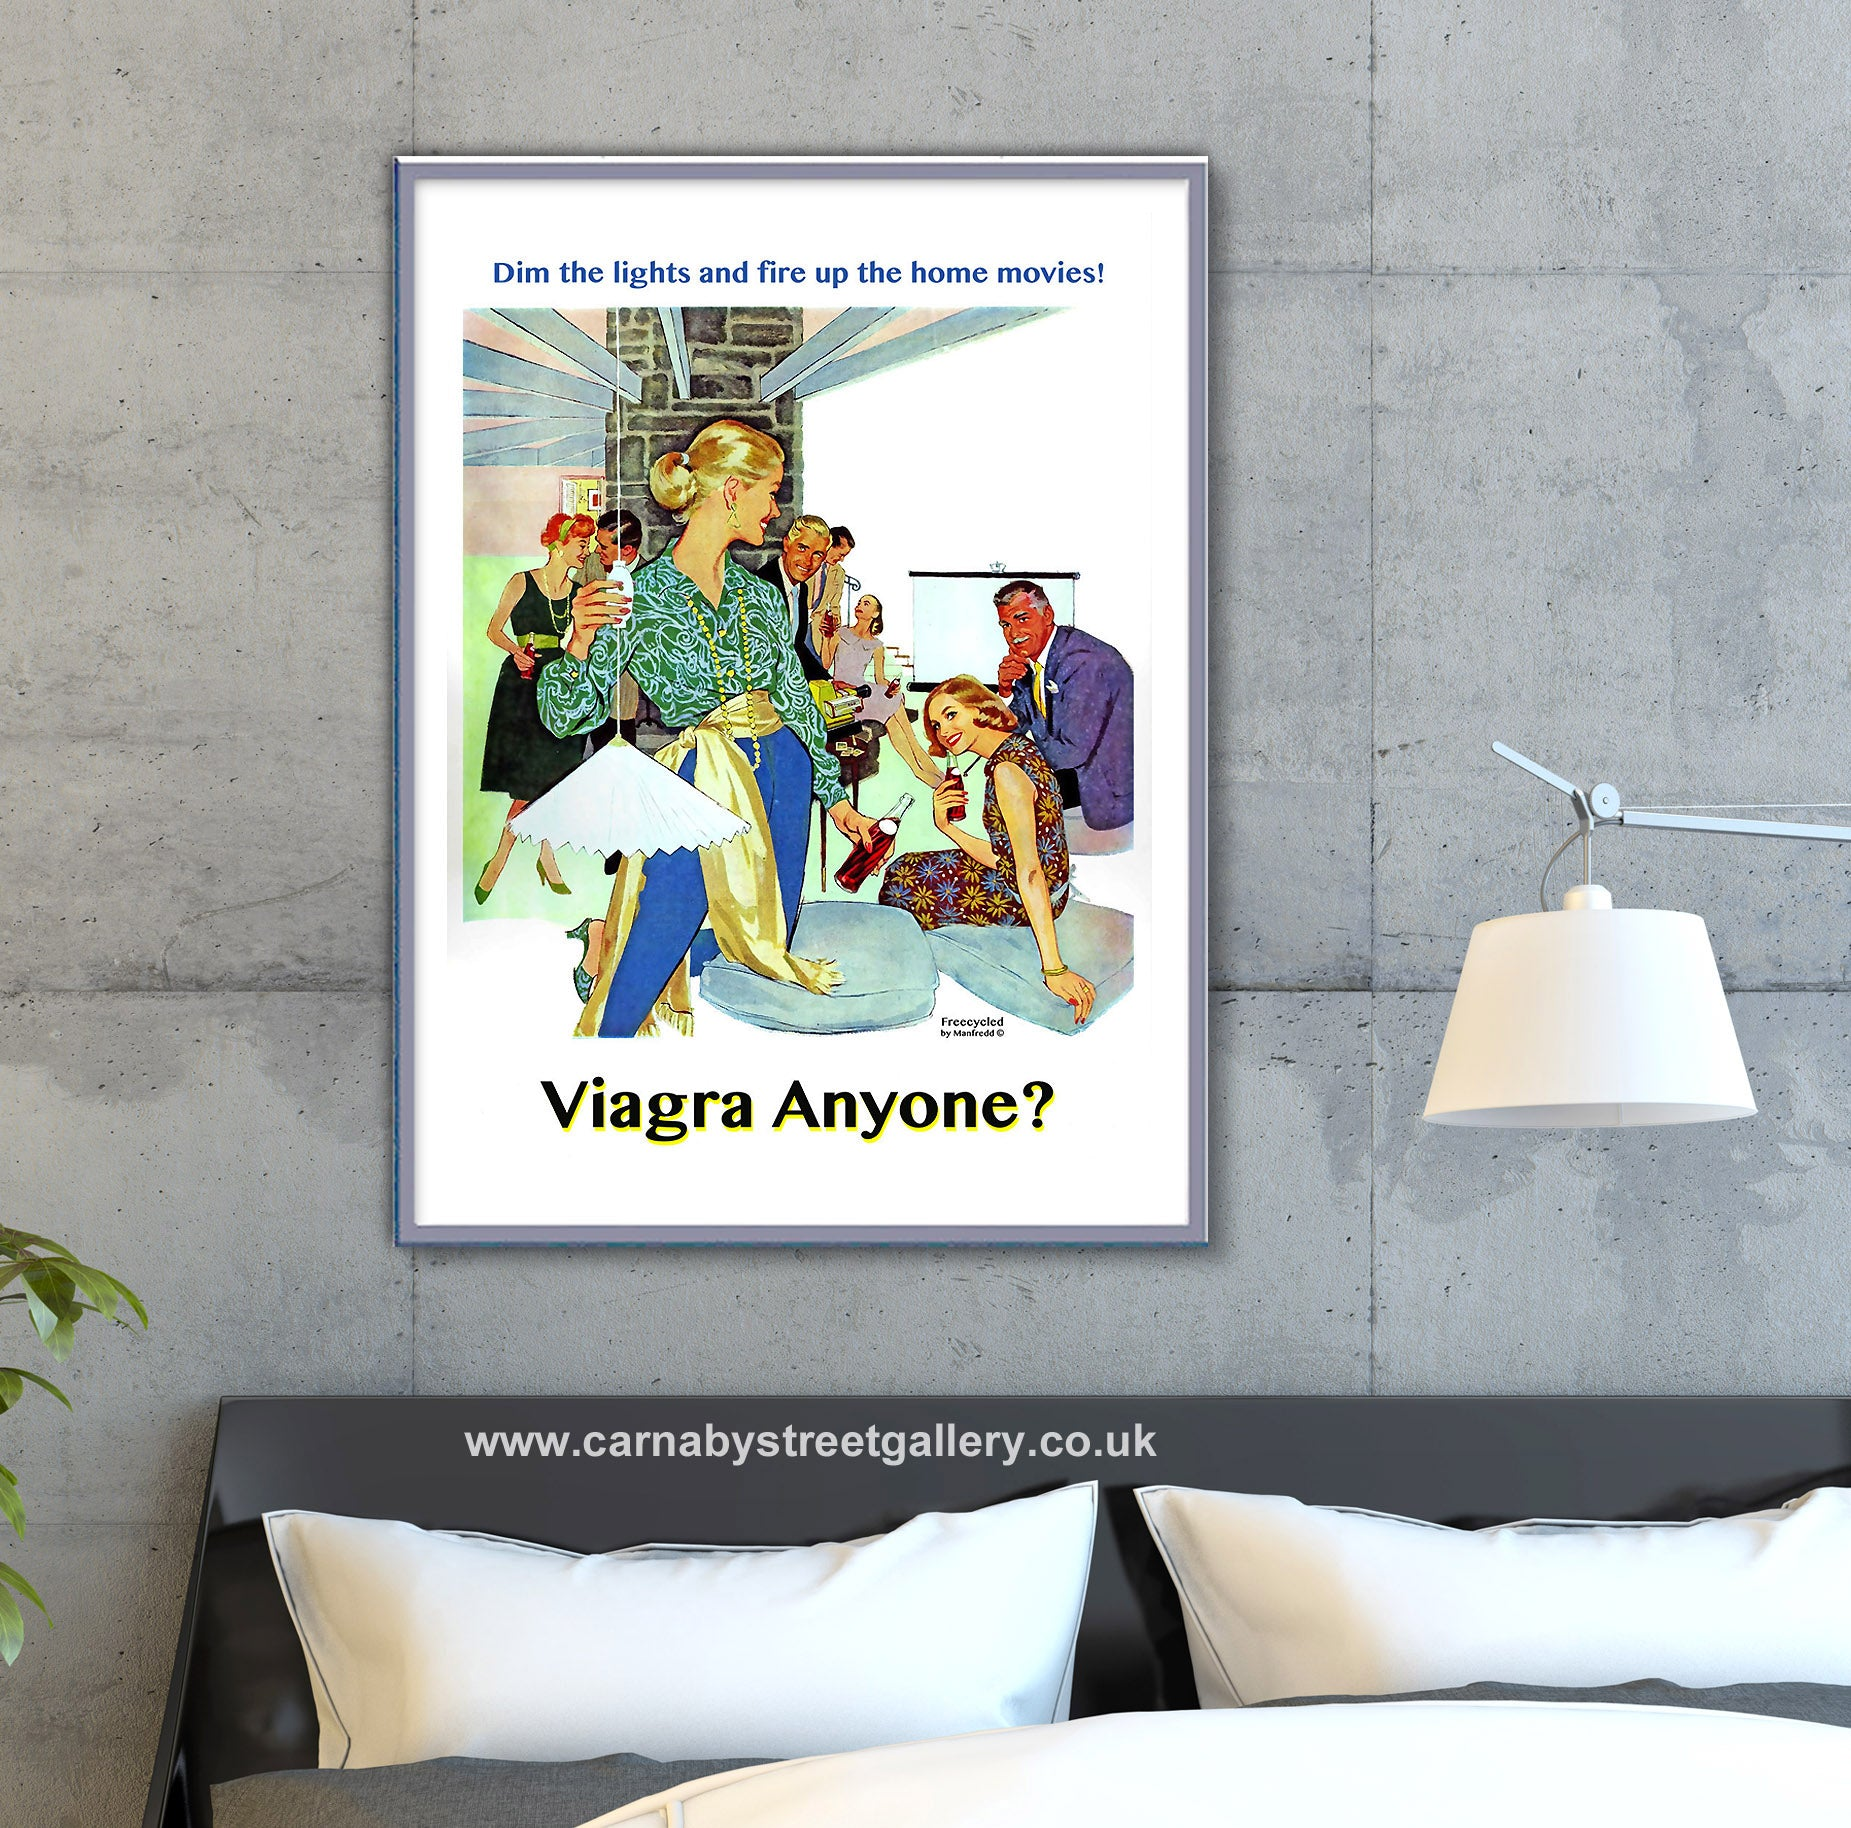 'VIAGRA, ANYONE?' 'Freecycle by retro artist Manfredd' funny humorous mid century party swingers swinging advert advertising poster art print - 'Unframed'